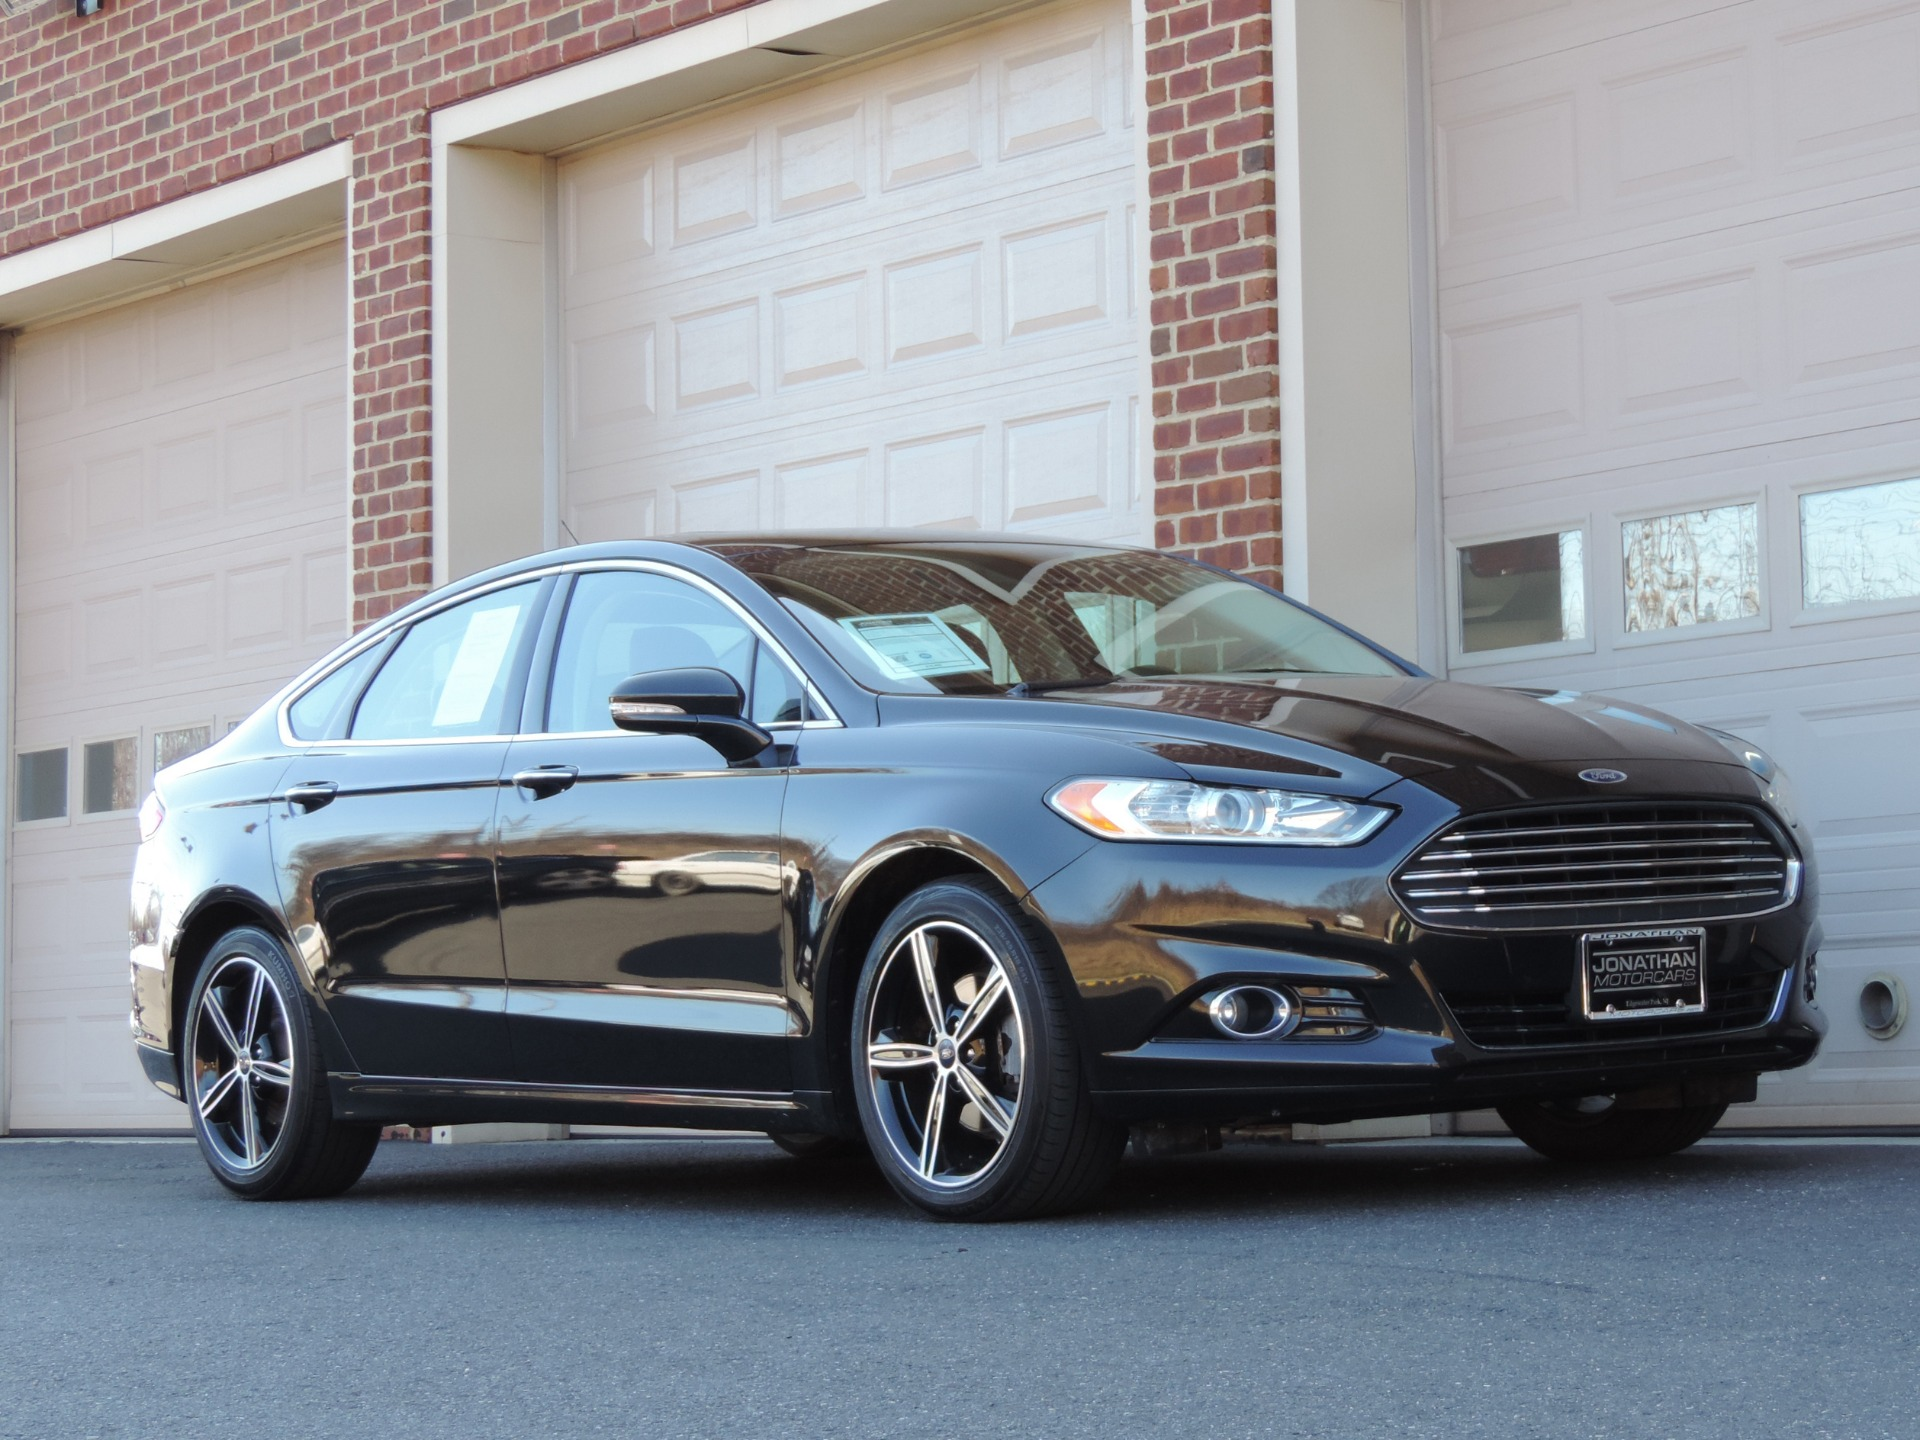 2015 ford fusion titanium the 2015 ford fusion titanium wards off asian midsize cars car. Black Bedroom Furniture Sets. Home Design Ideas